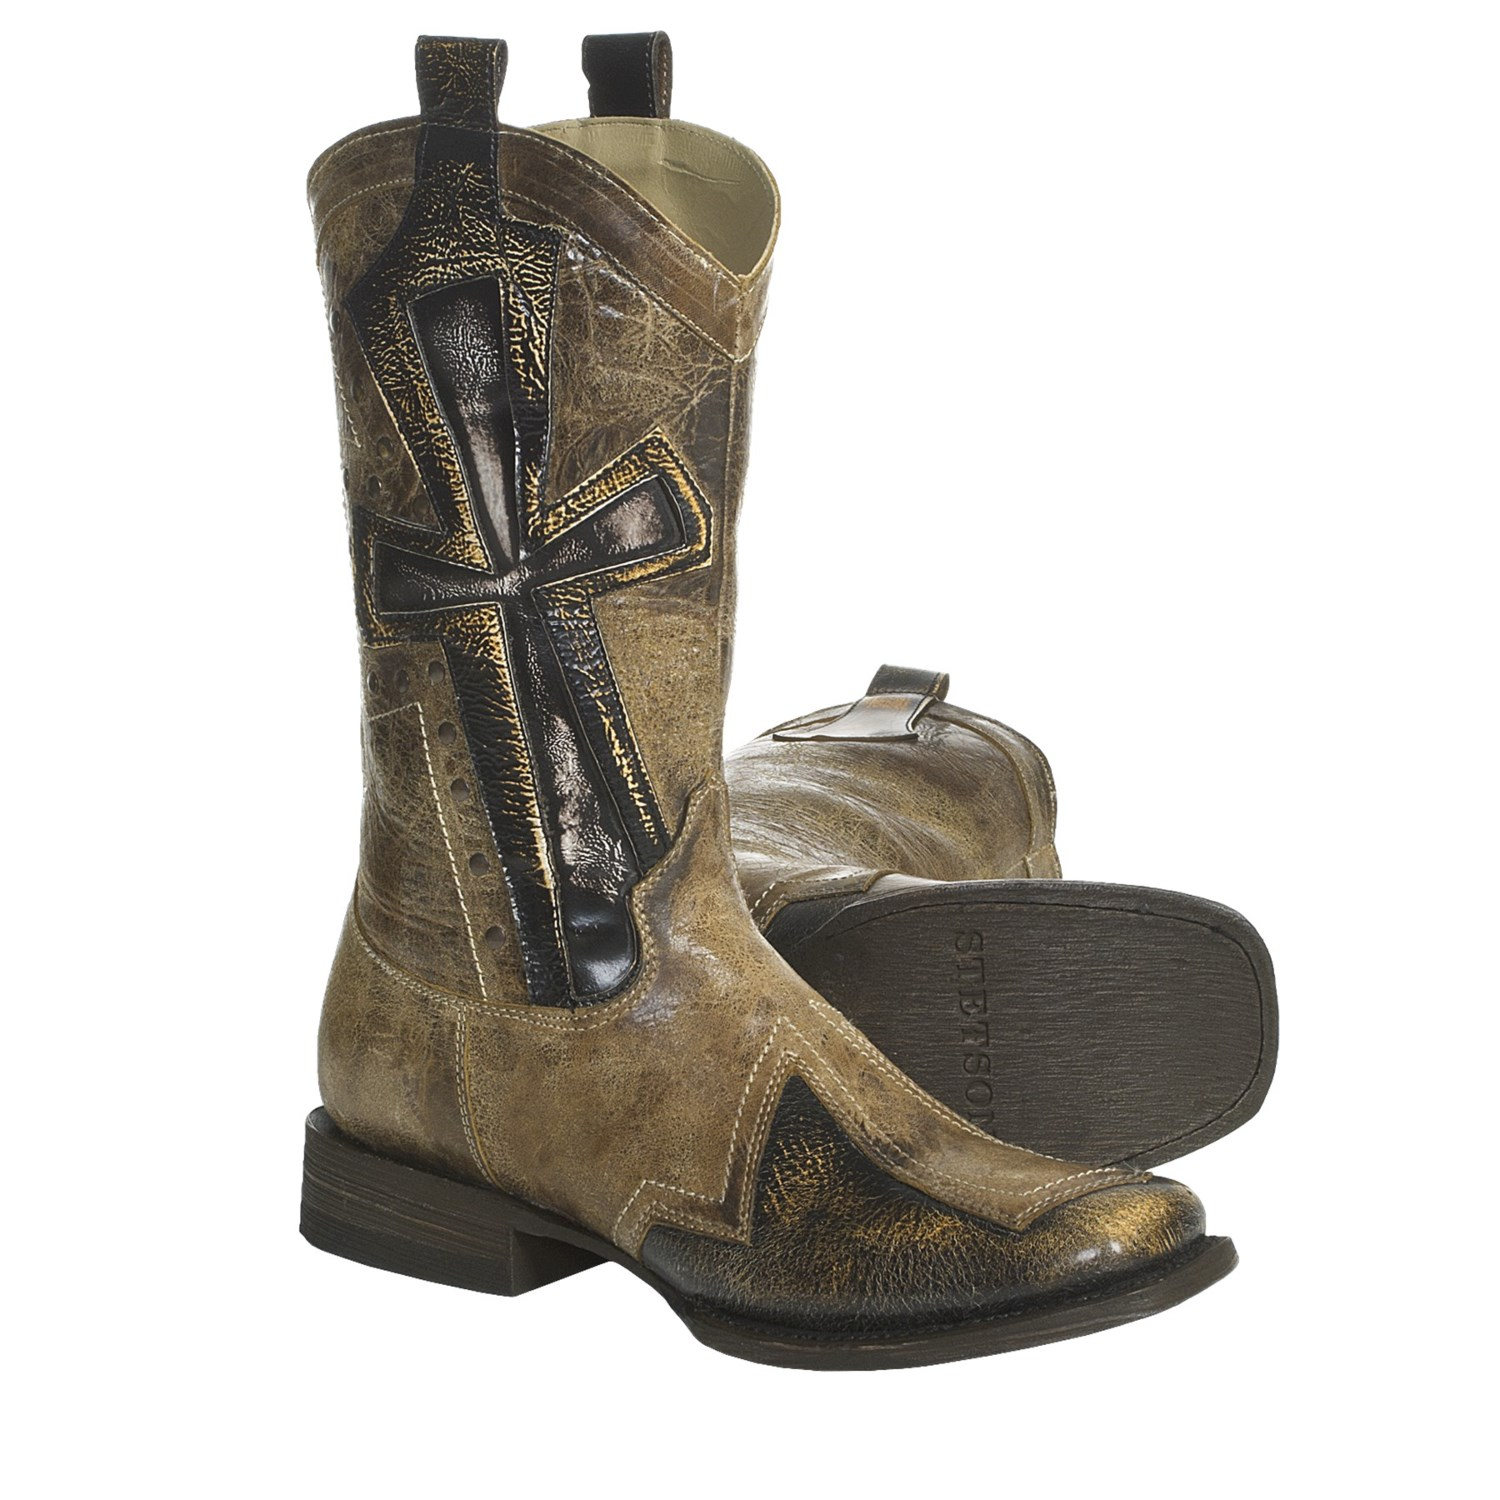 Womens cowboy boots with crosses